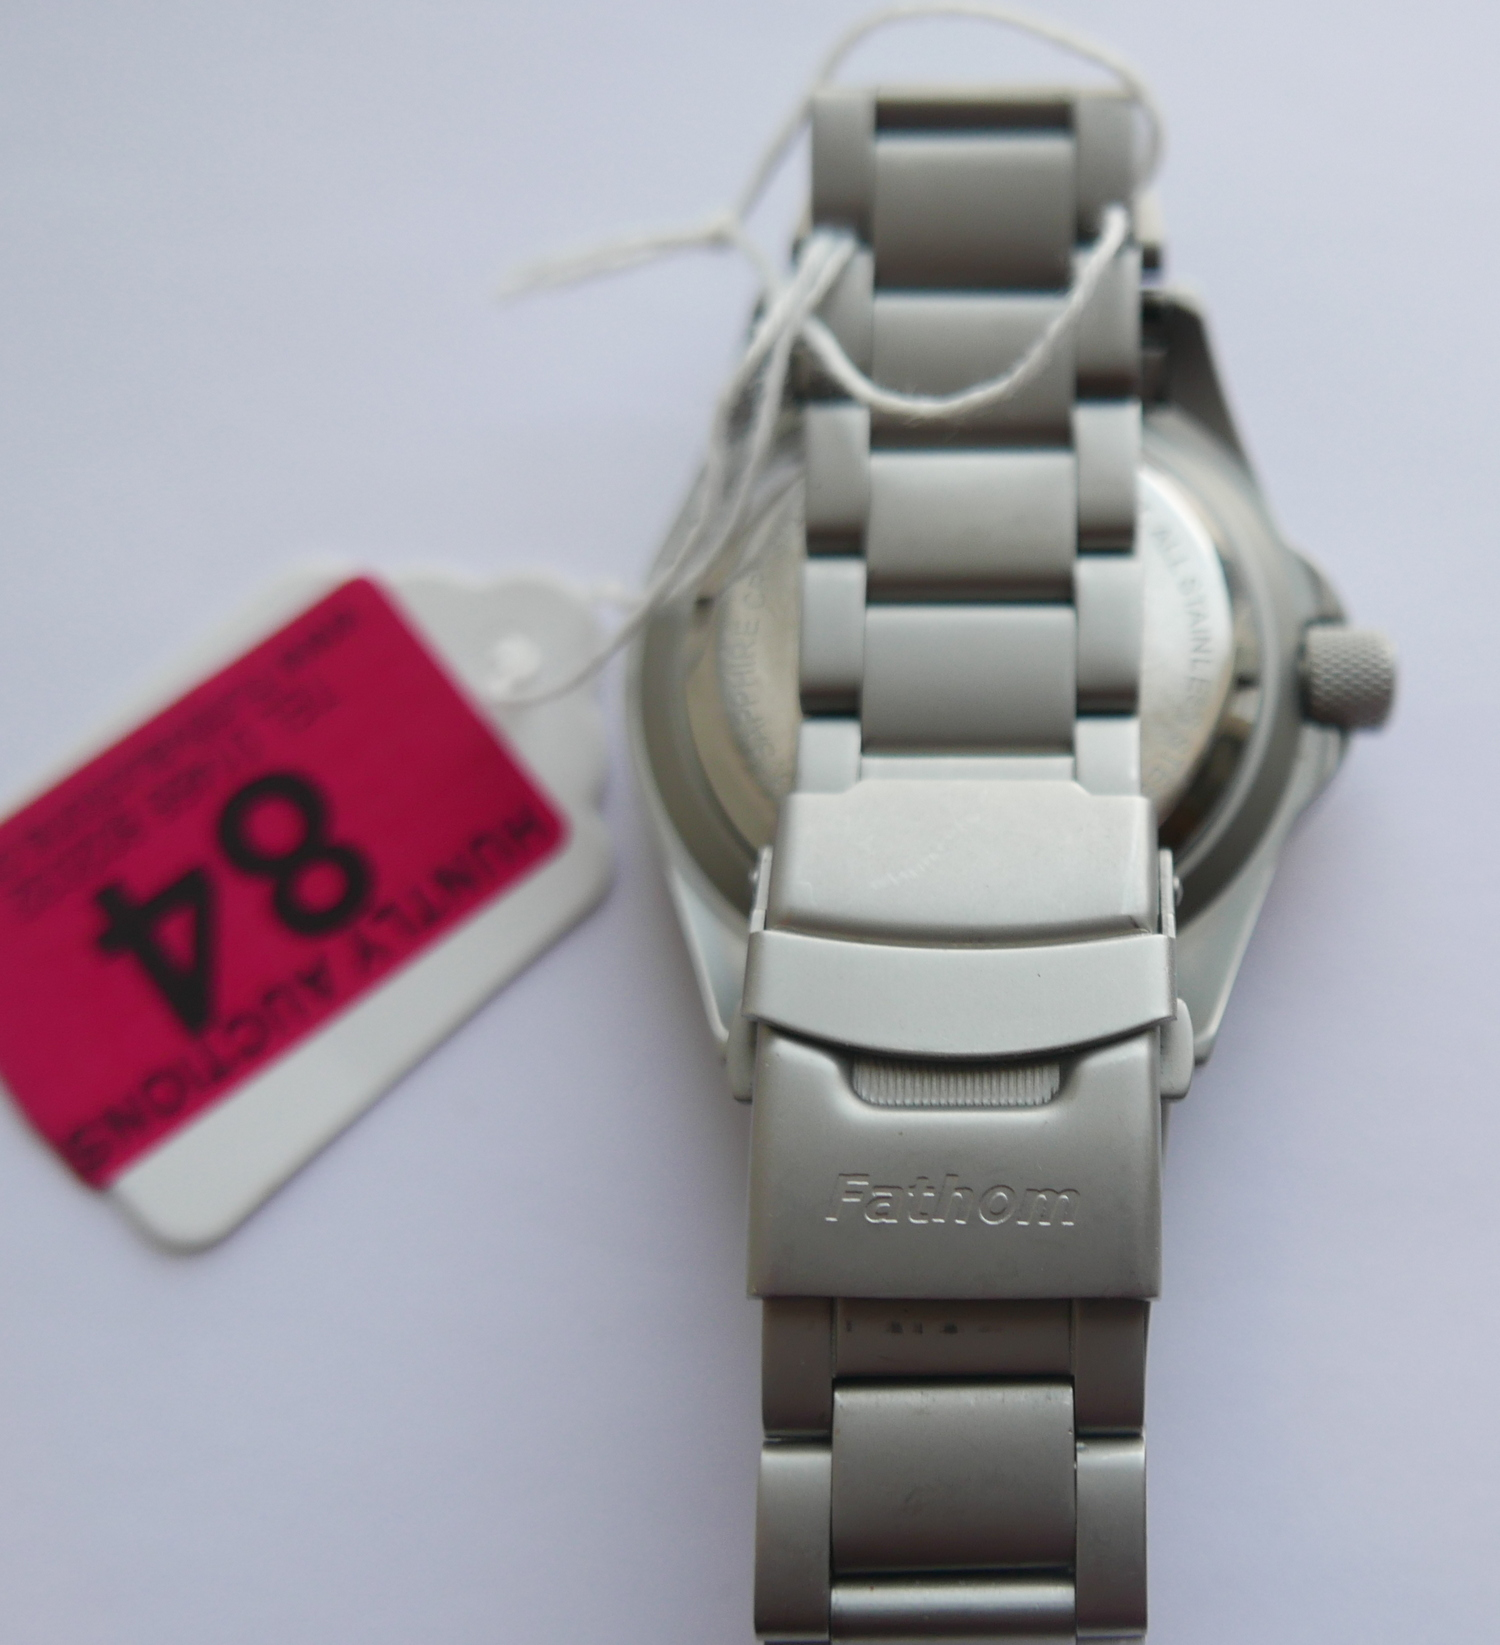 Lot 84 - Fathom Systems Aberdeen Automatic Diving Watch by Microtech H3 Switzerland - working order.